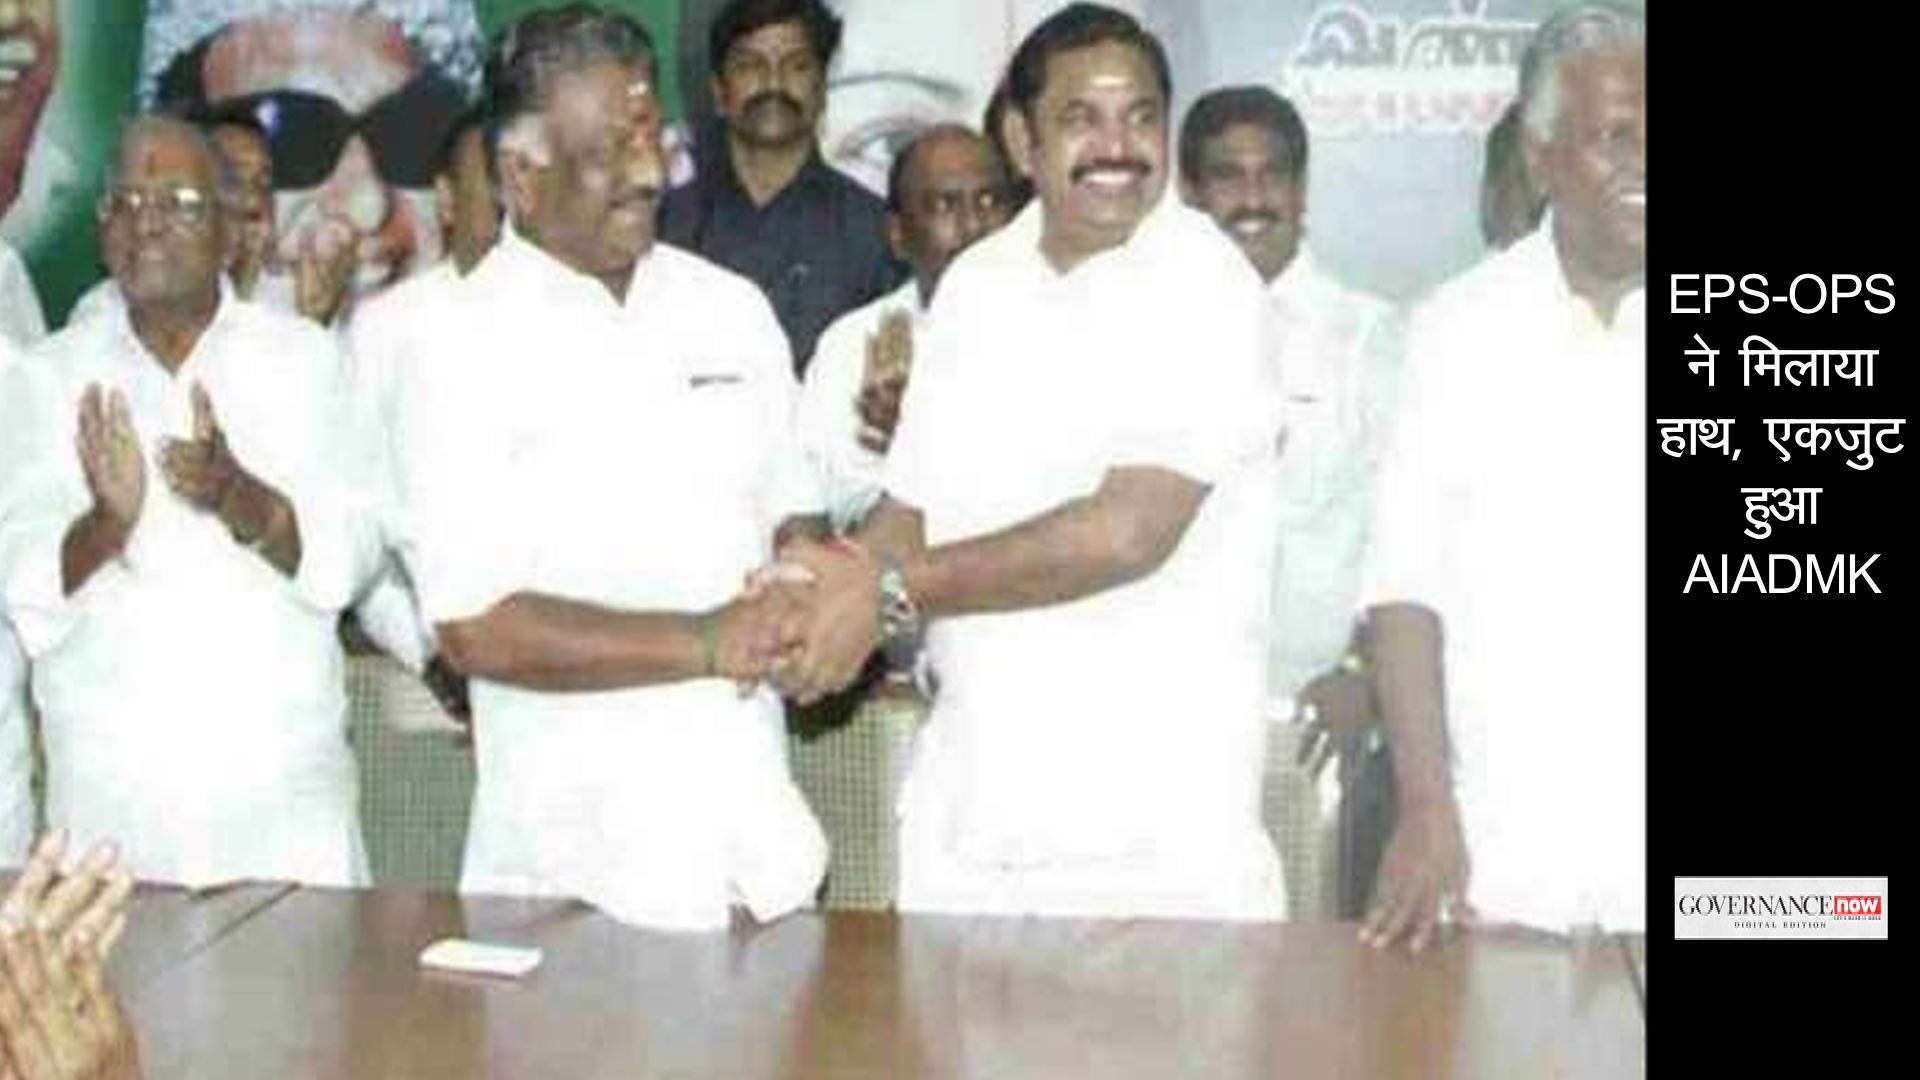 Merger completed for AIADMK, EPS-OPS shakes hand